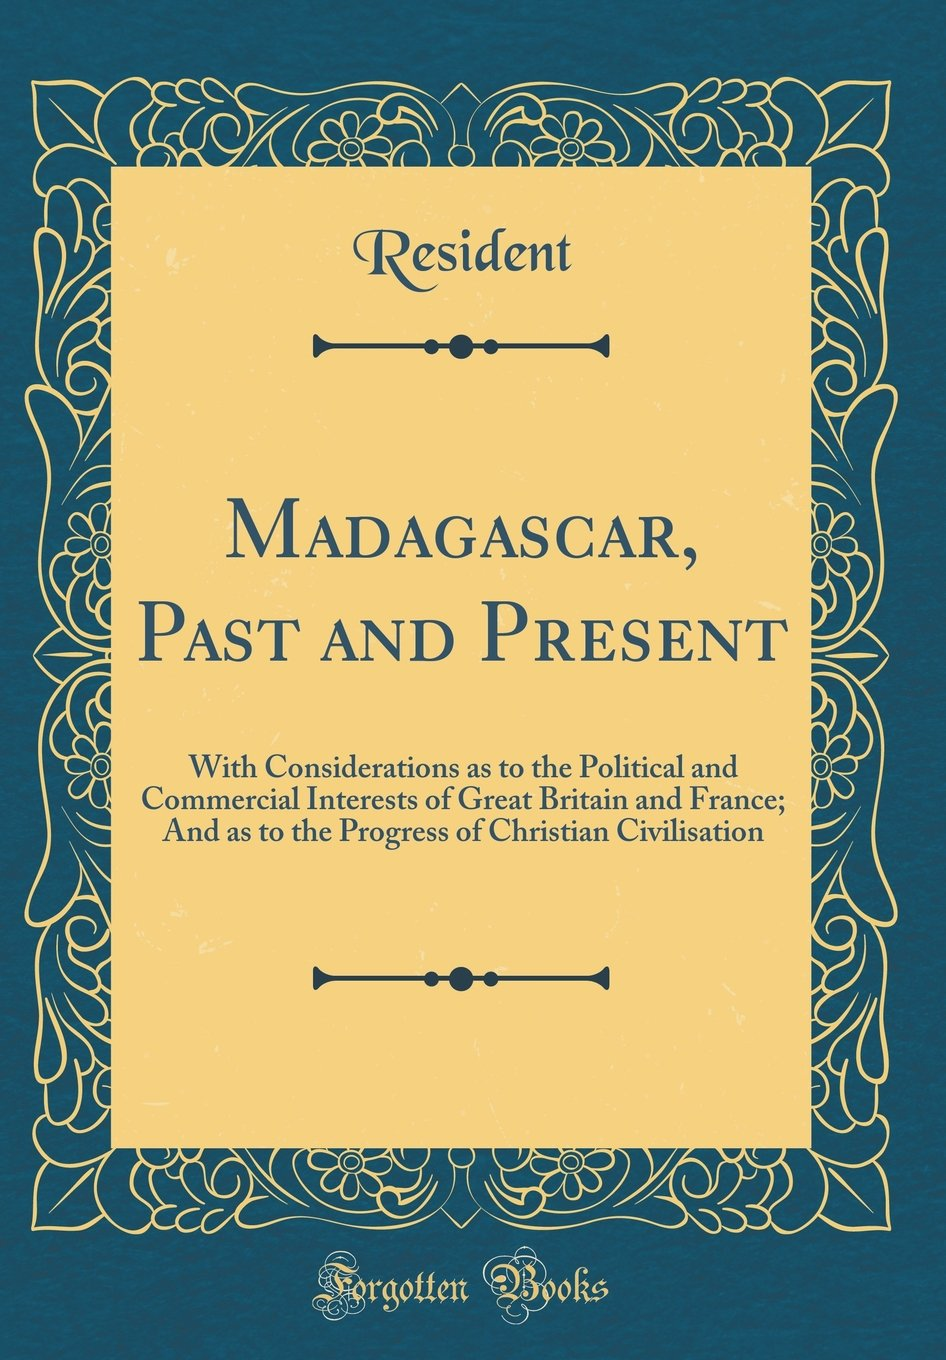 Download Madagascar, Past and Present: With Considerations as to the Political and Commercial Interests of Great Britain and France; And as to the Progress of Christian Civilisation (Classic Reprint) pdf